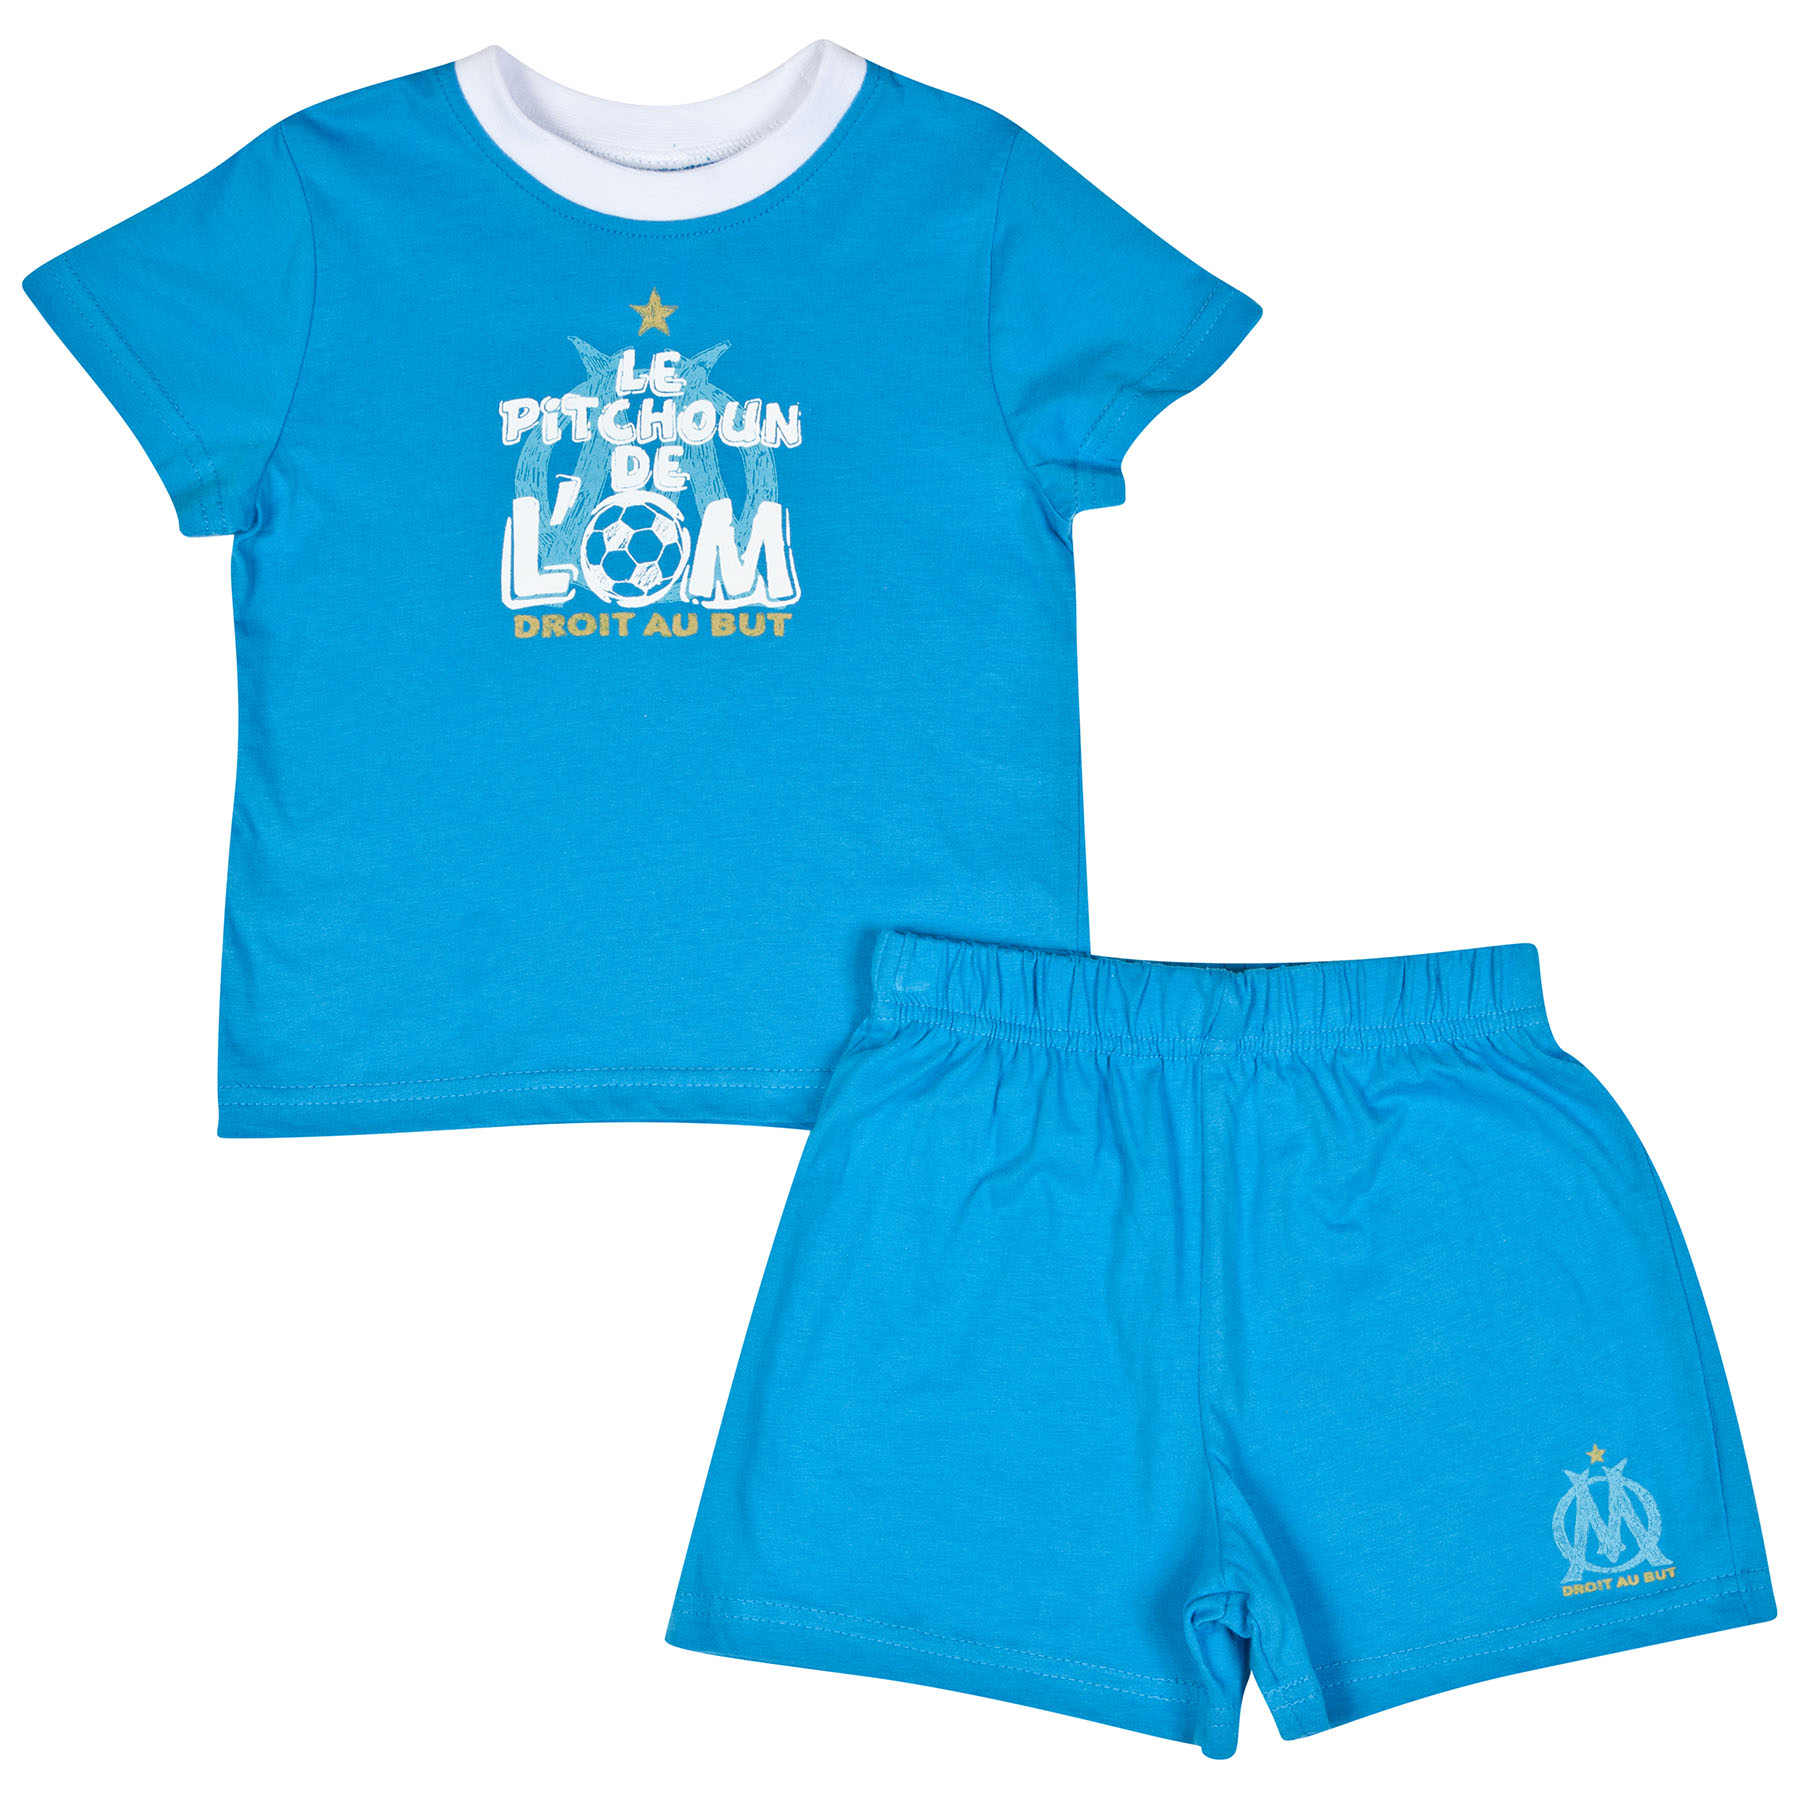 Olympique de Marseille T-Shirt and Short Set - Blue - Baby Boys